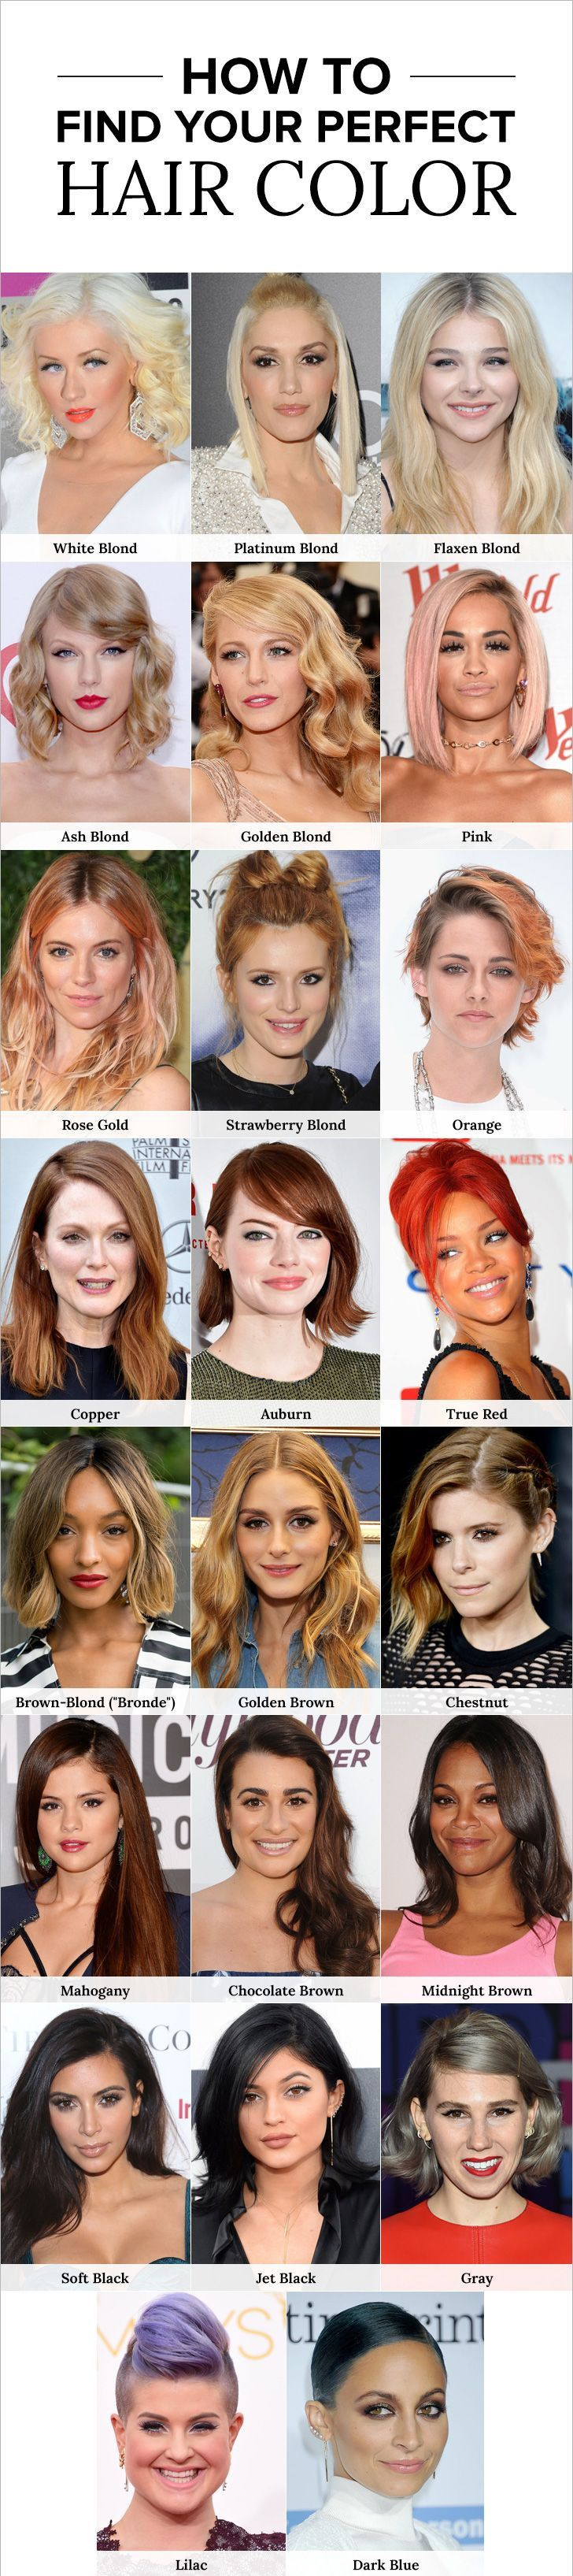 Find Your Perfect New Hair Color Before Your Next Salon Visit#Haircolor#